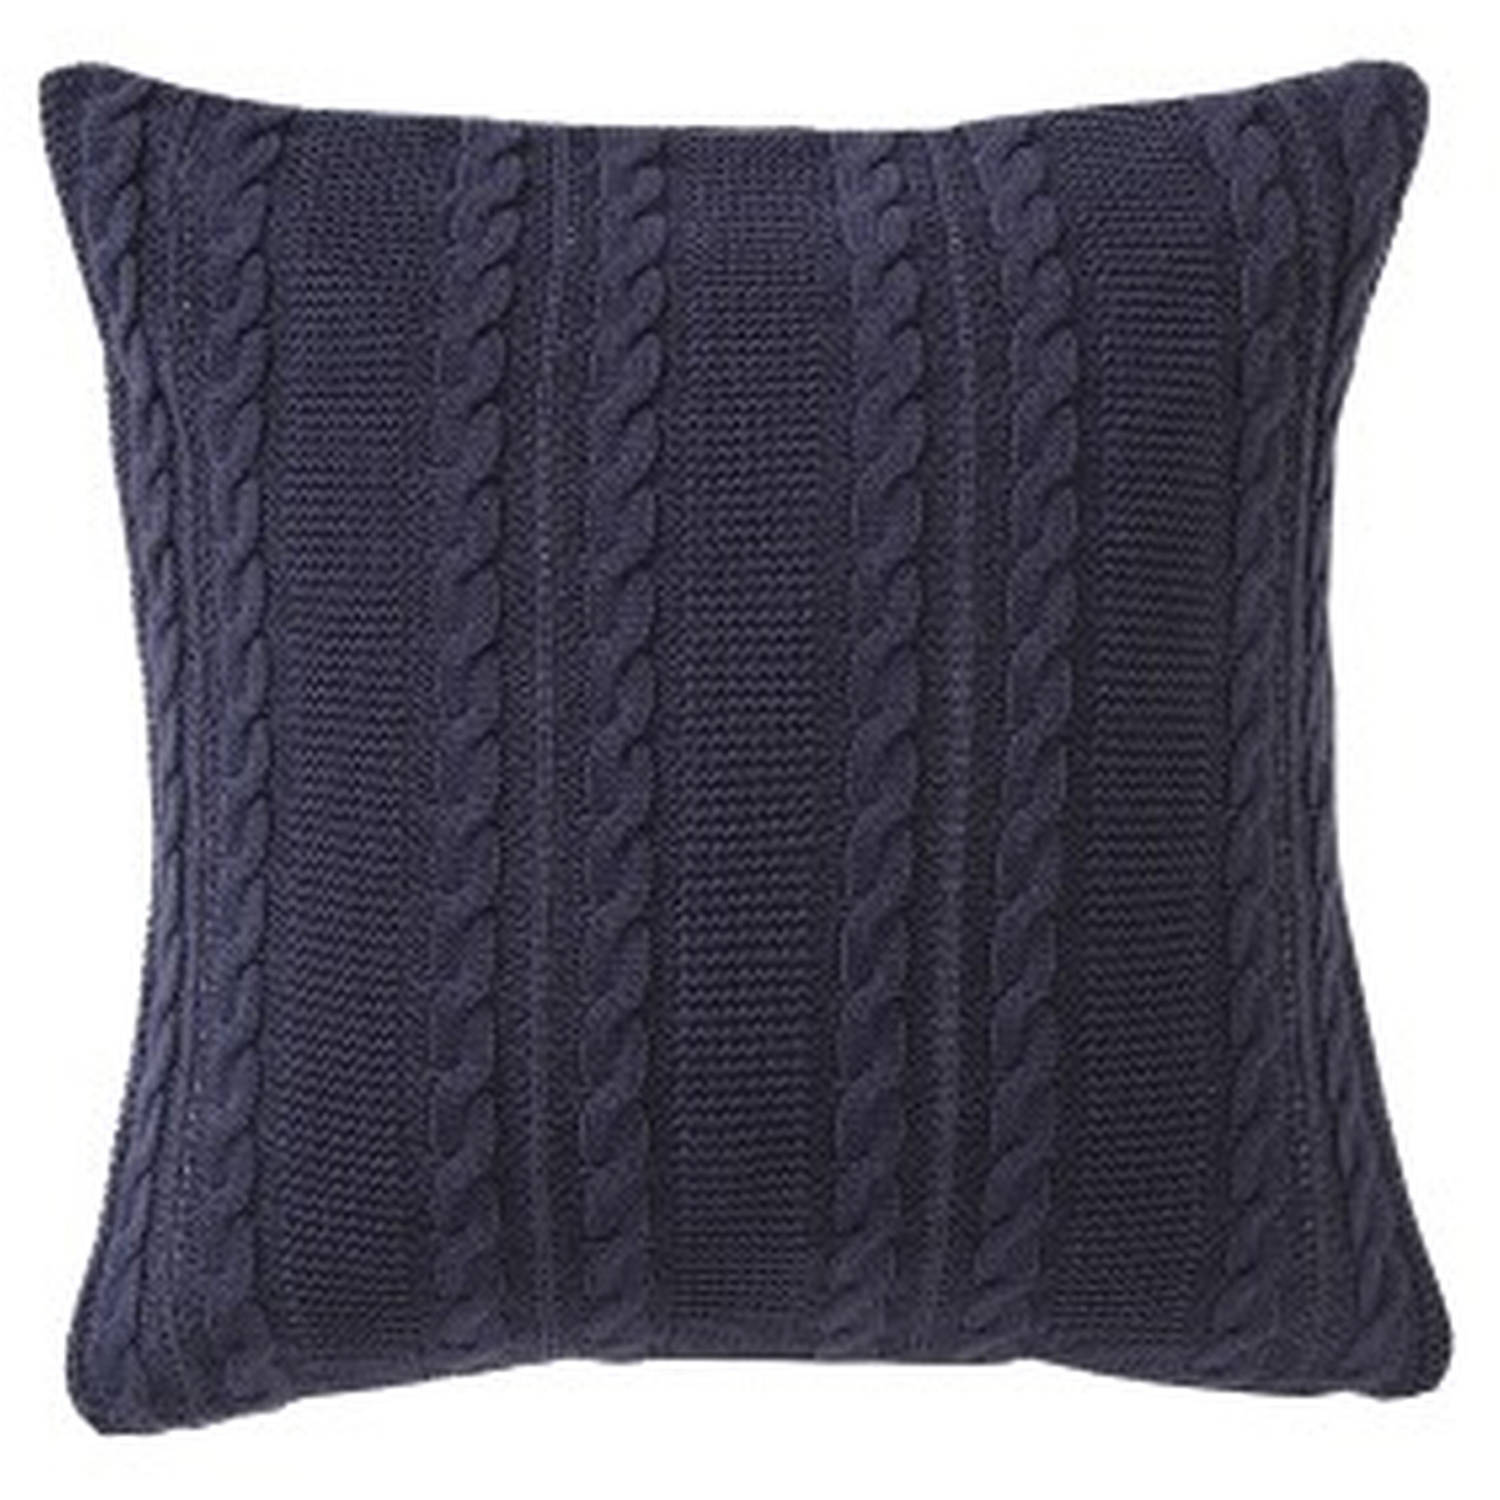 "VCNY Home Solid Dublin Cable Knit 26"" x 26"" Square Decorative Euro Sham, Multiple Colors Available"